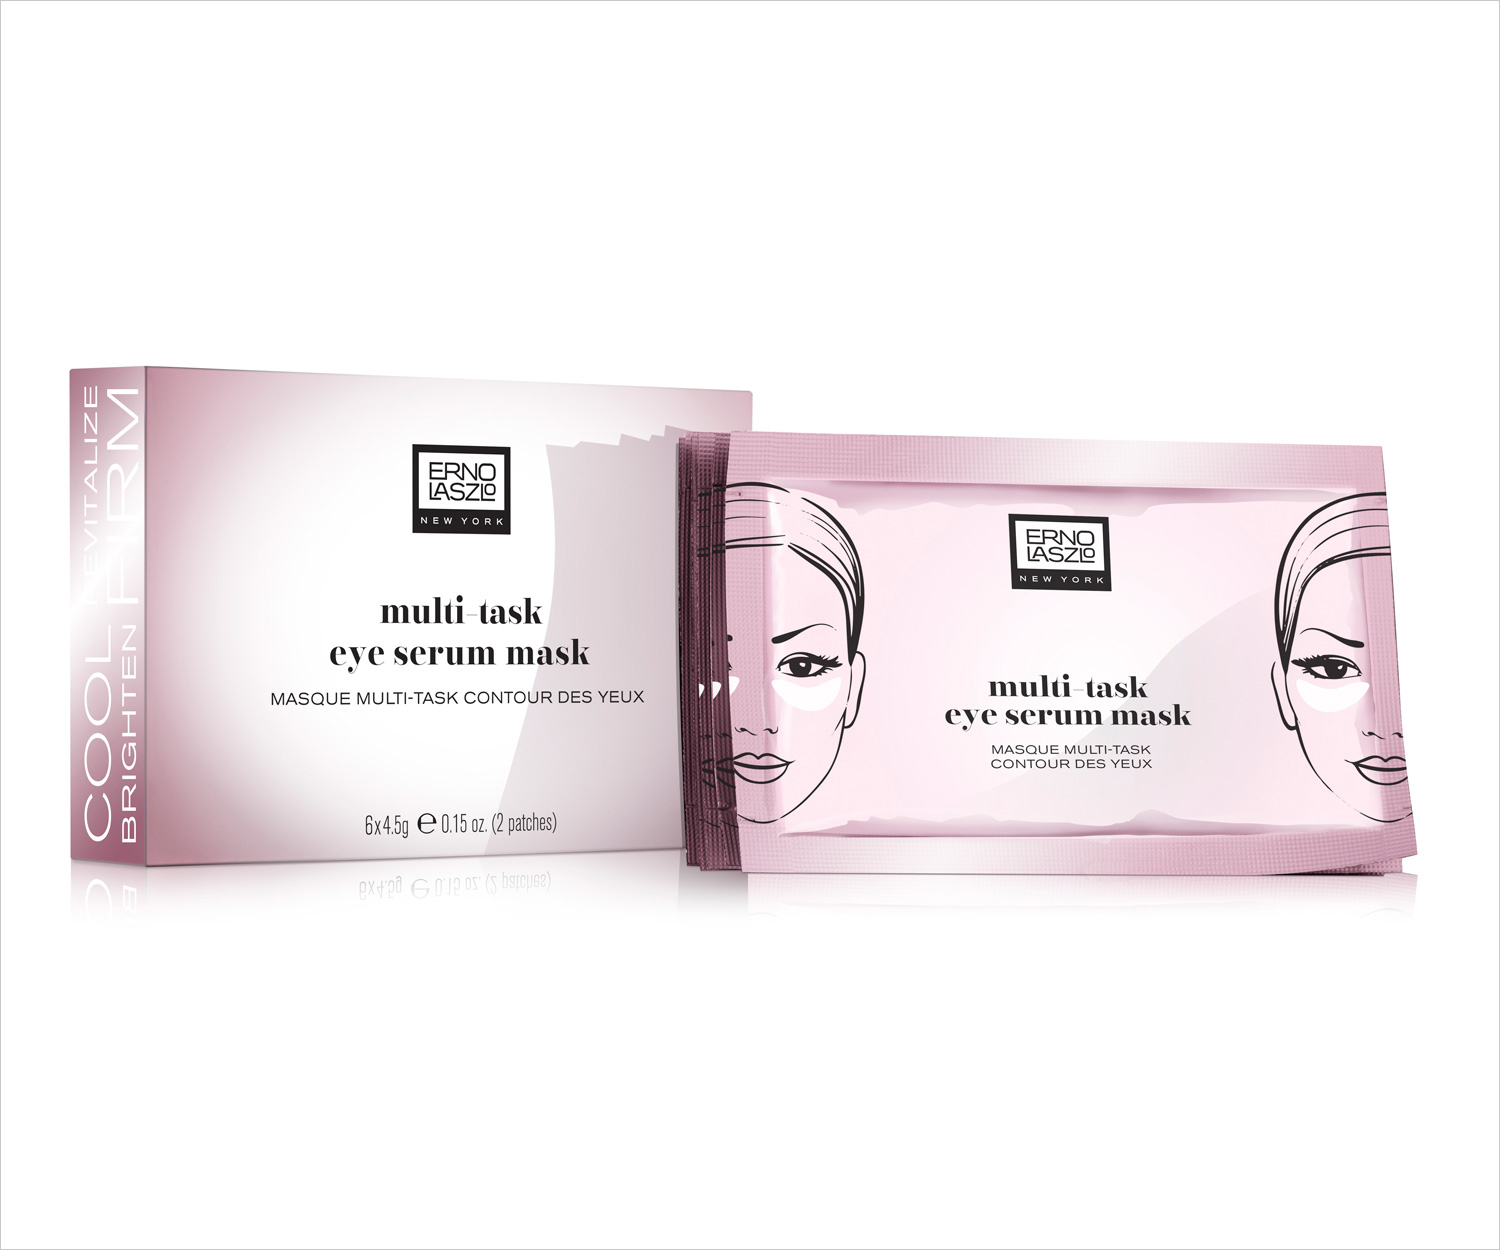 Erno Laszlo multi task eye serum mask remove dark circles puffy eyes fall wedding products